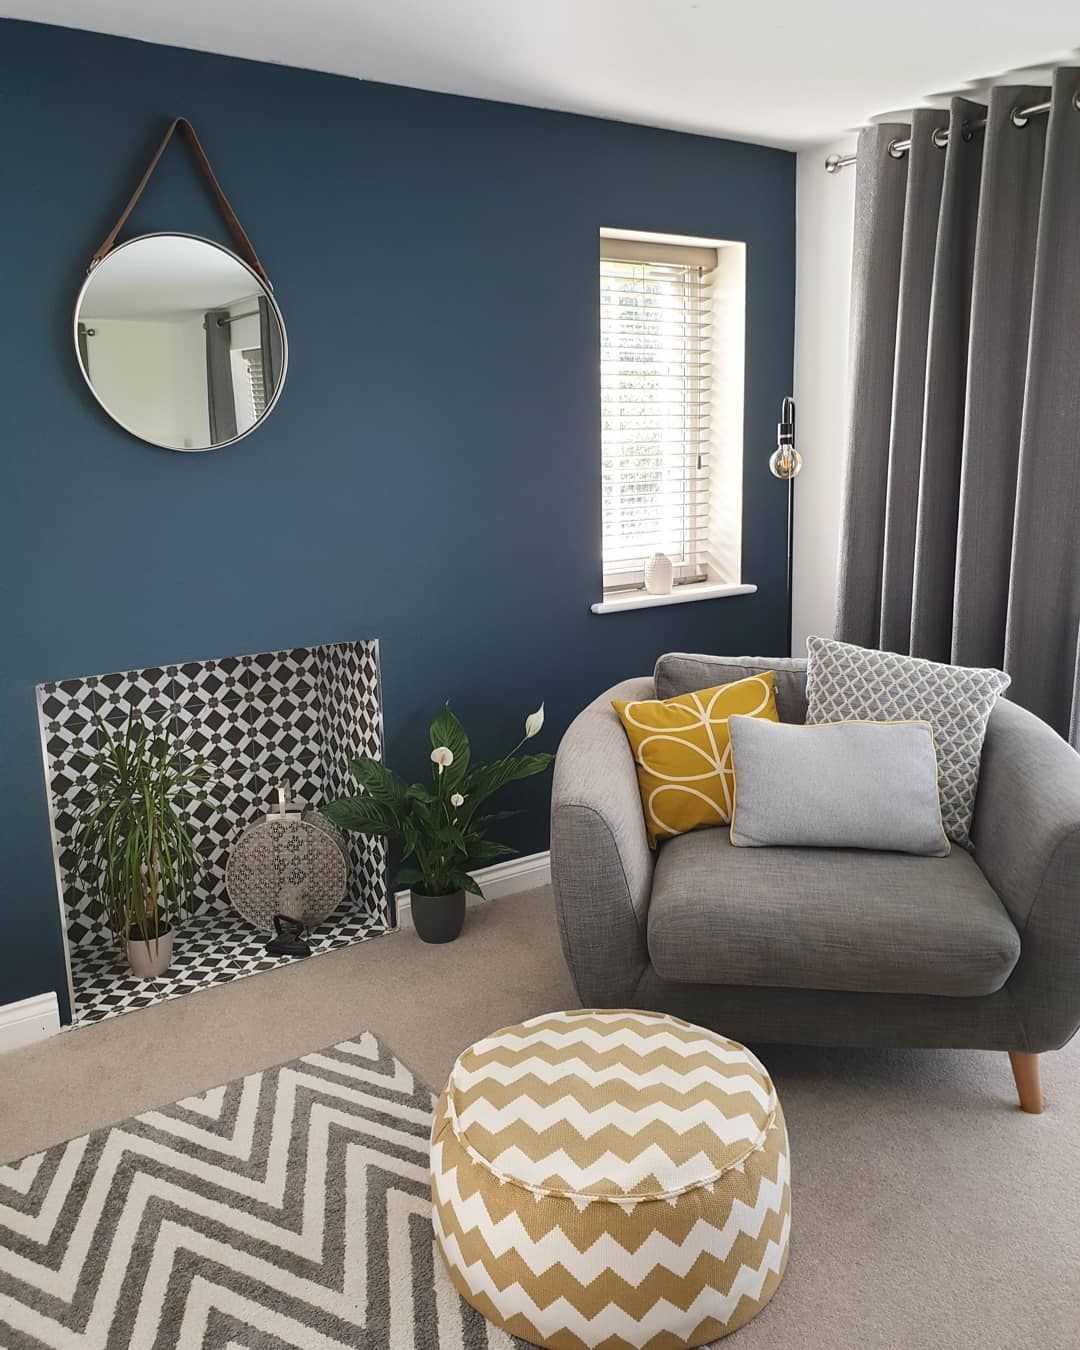 New the best home decor with pictures april th also when you rh pinterest